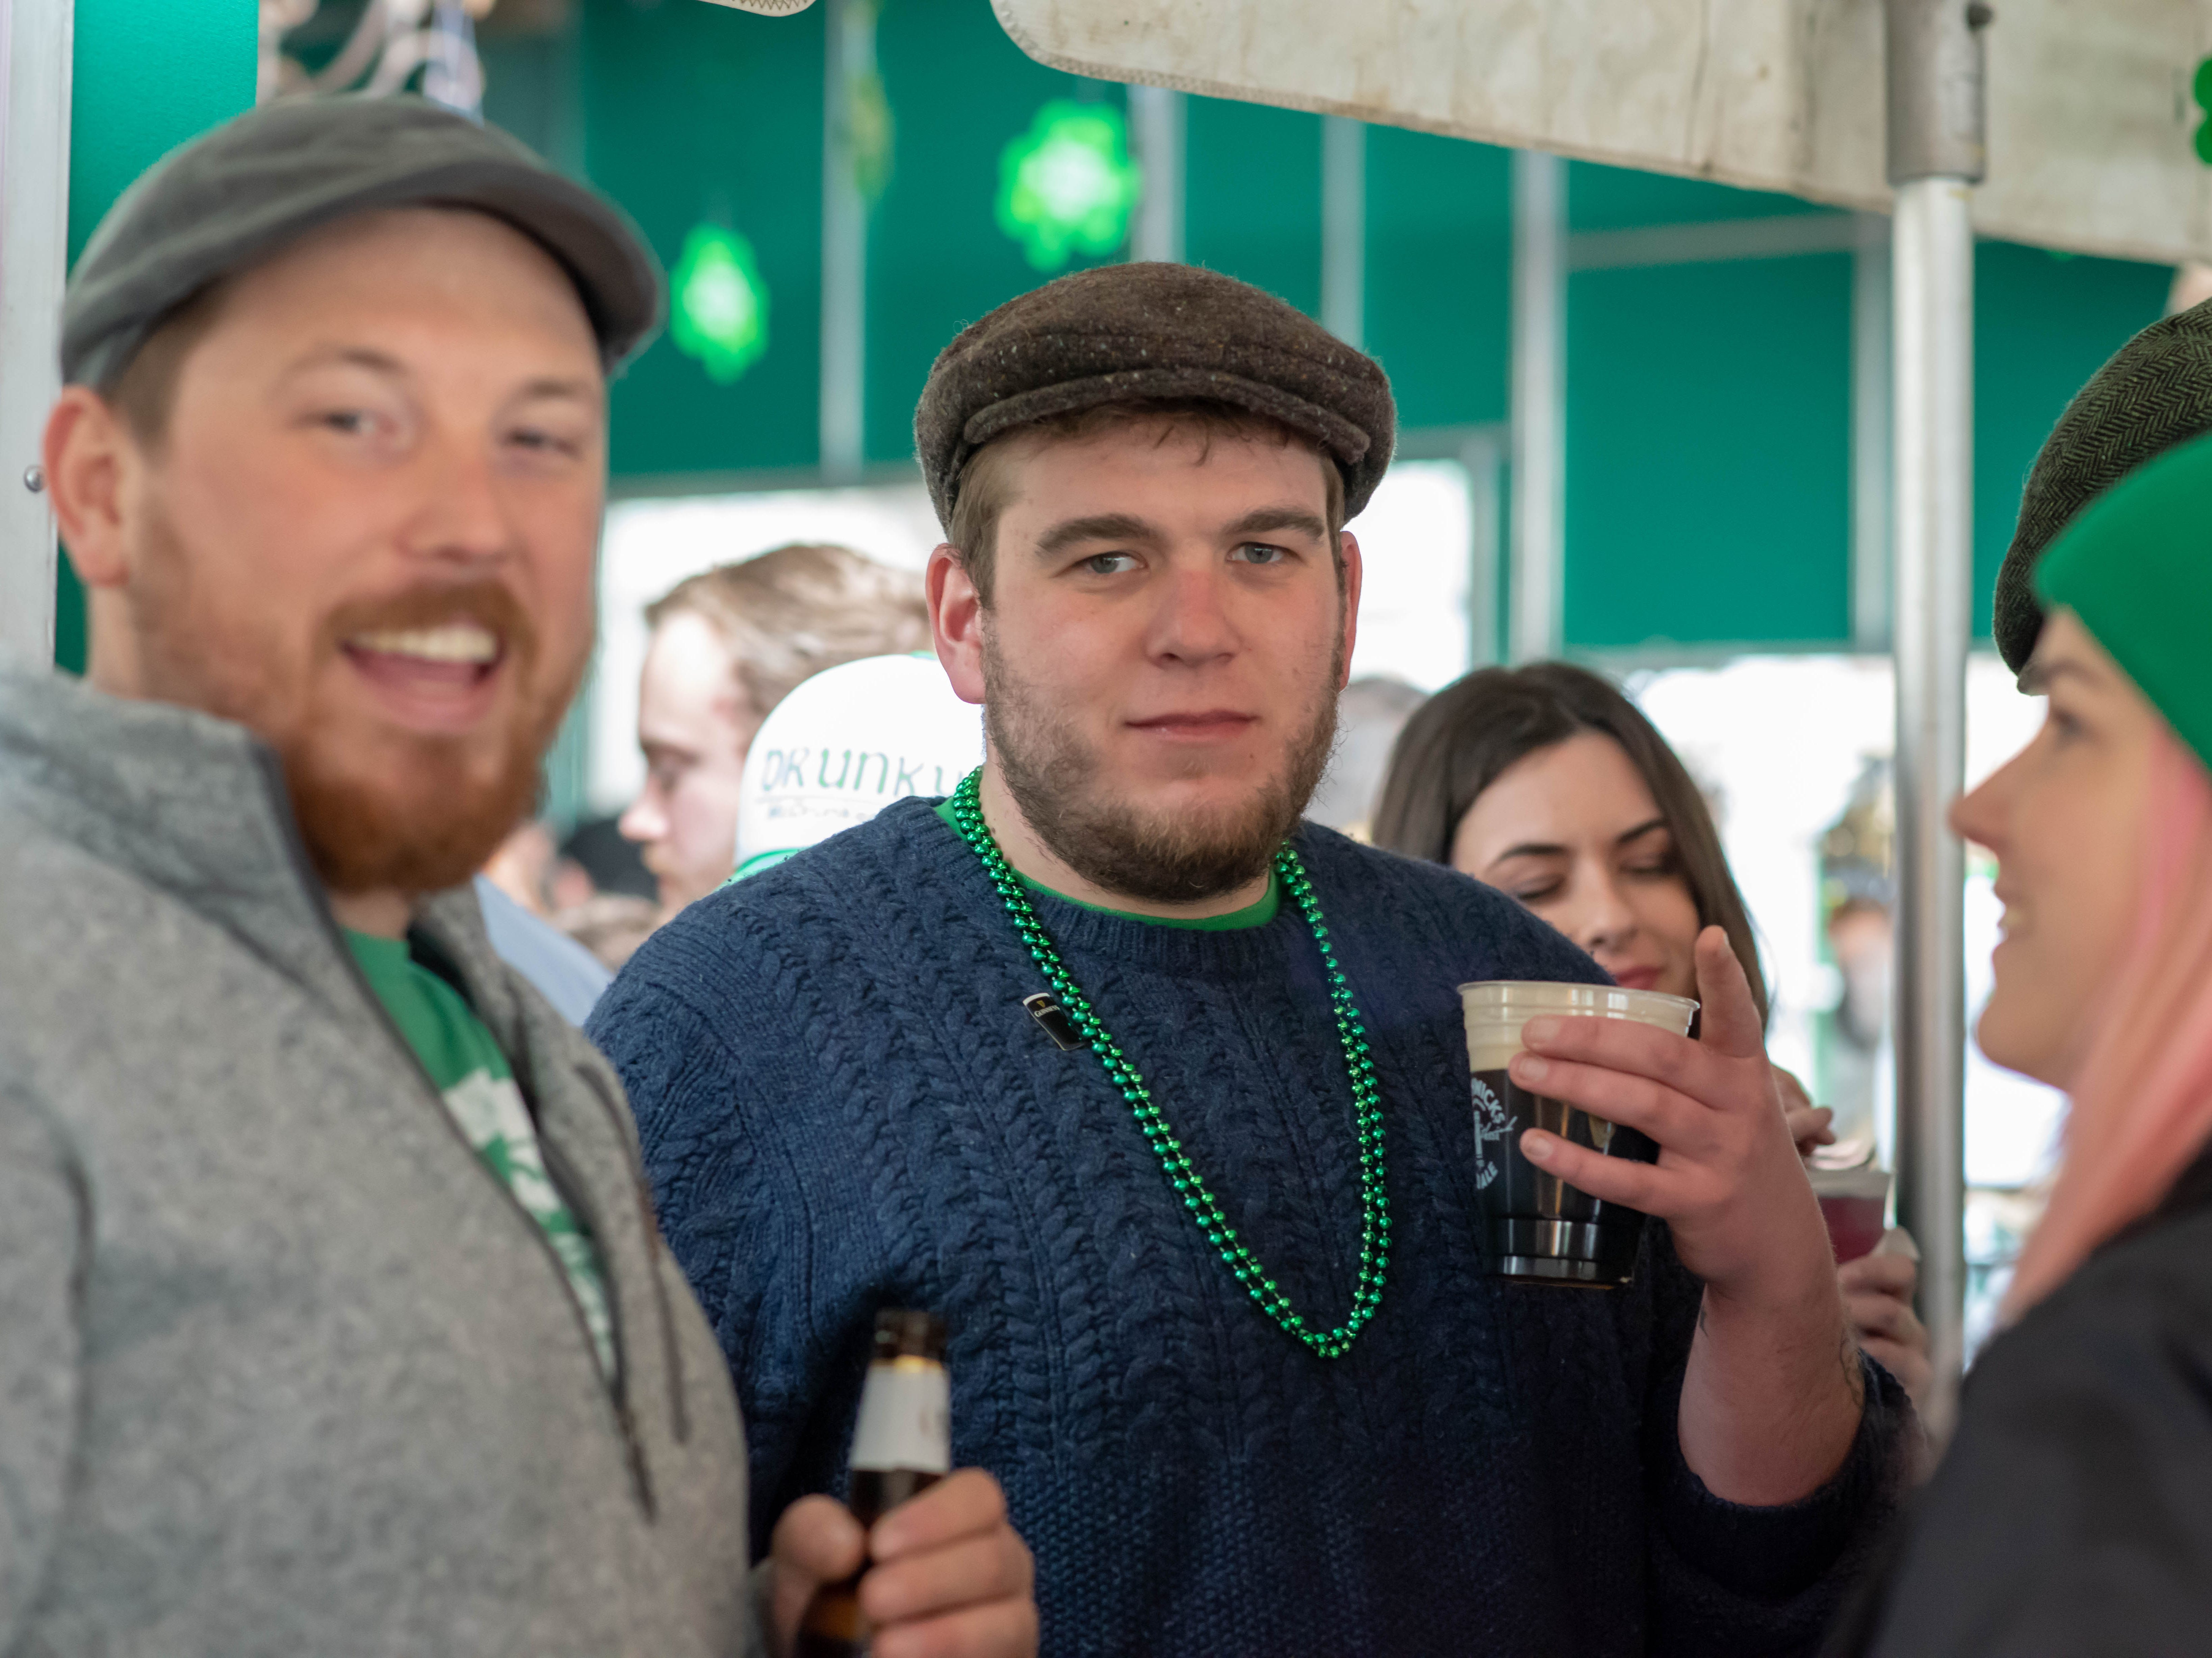 St. Patrick's Day party at Johnny Mac House of Spirits on Main Street in Asbury Park on March 10, 2019.